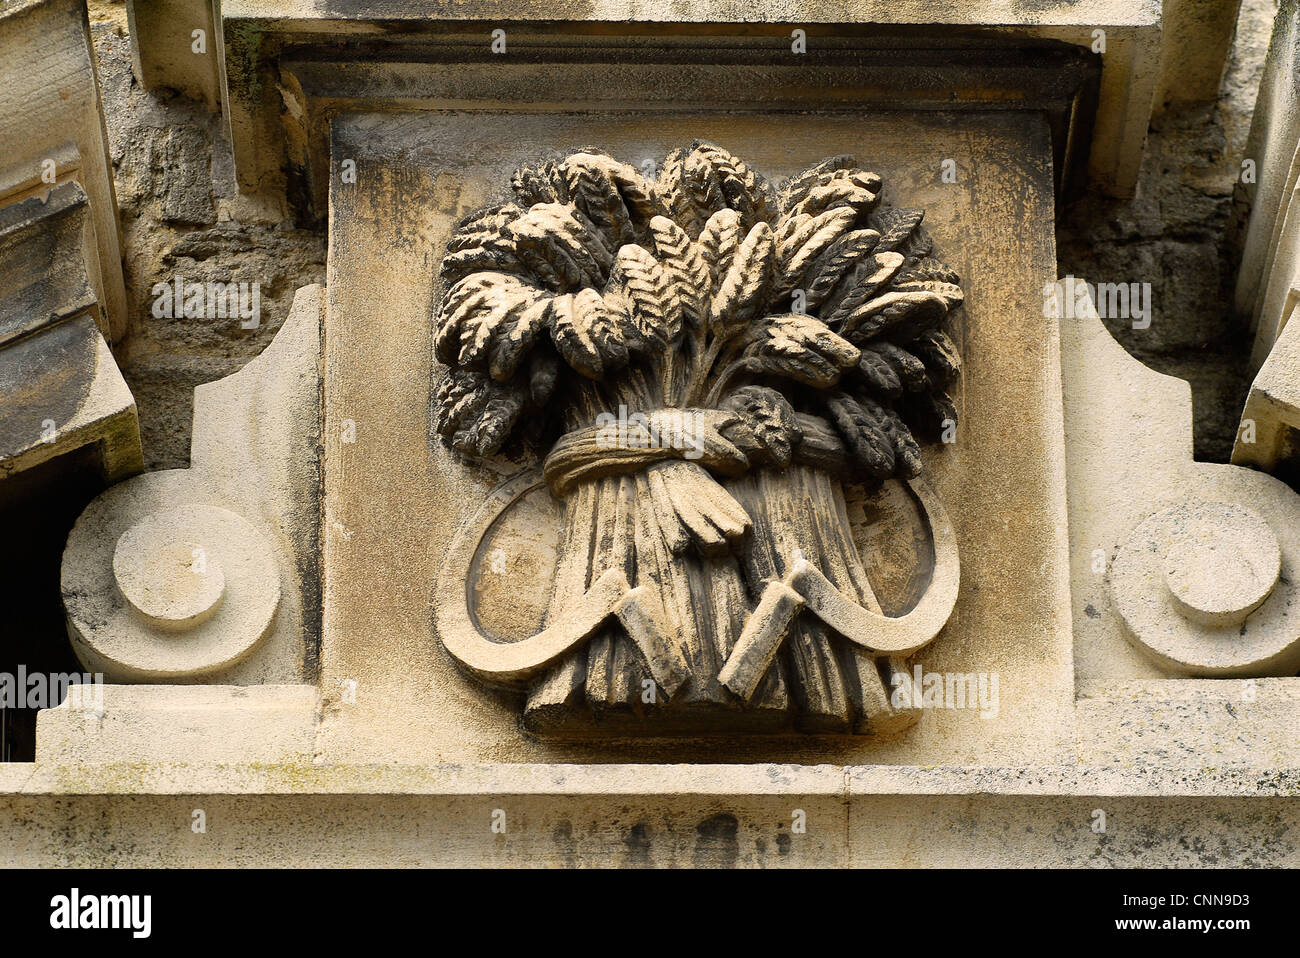 Corn sheaf sign outside the Corn Exchange in Thrapston, Northamptonshire - Stock Image